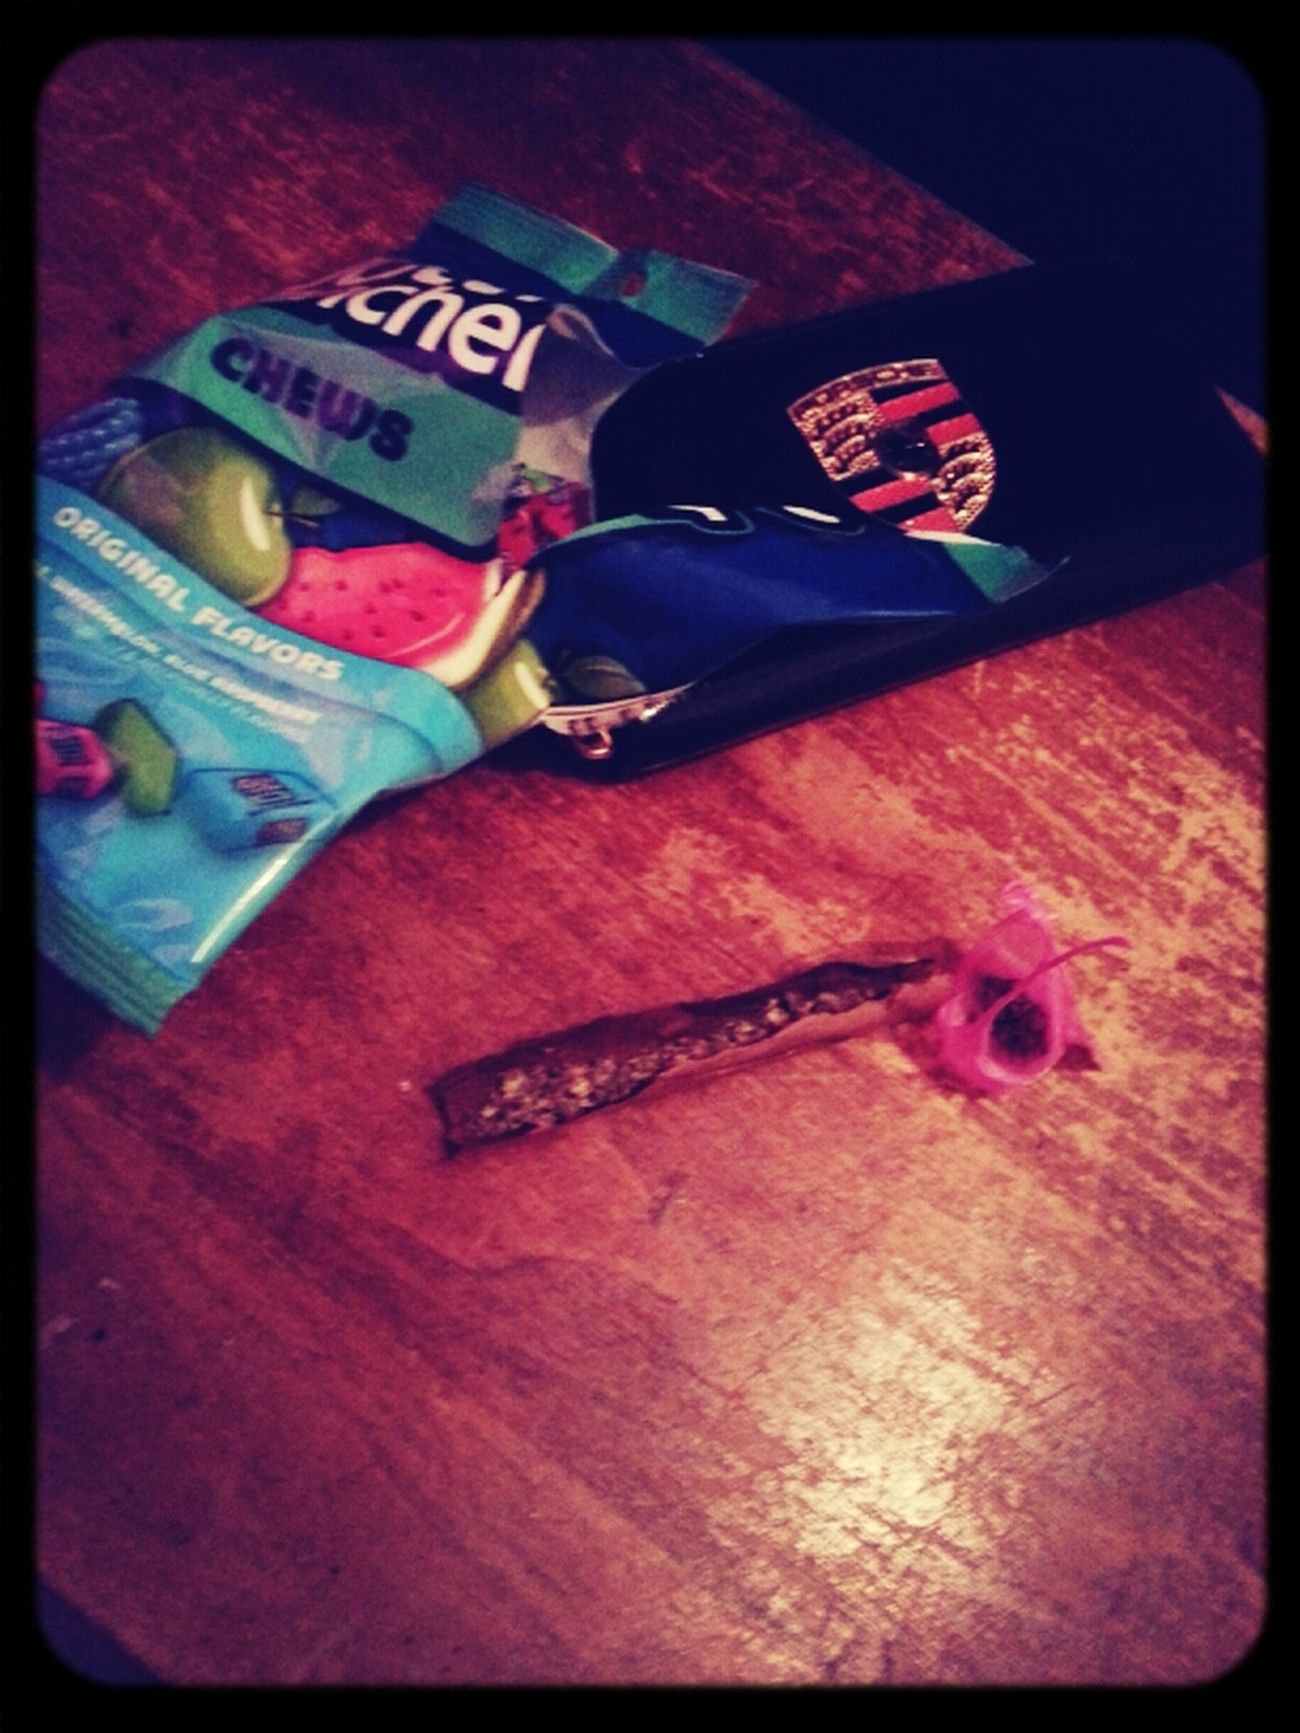 Breakfast Chillin Gas Highlife Smokin Dope Jolly Rancher